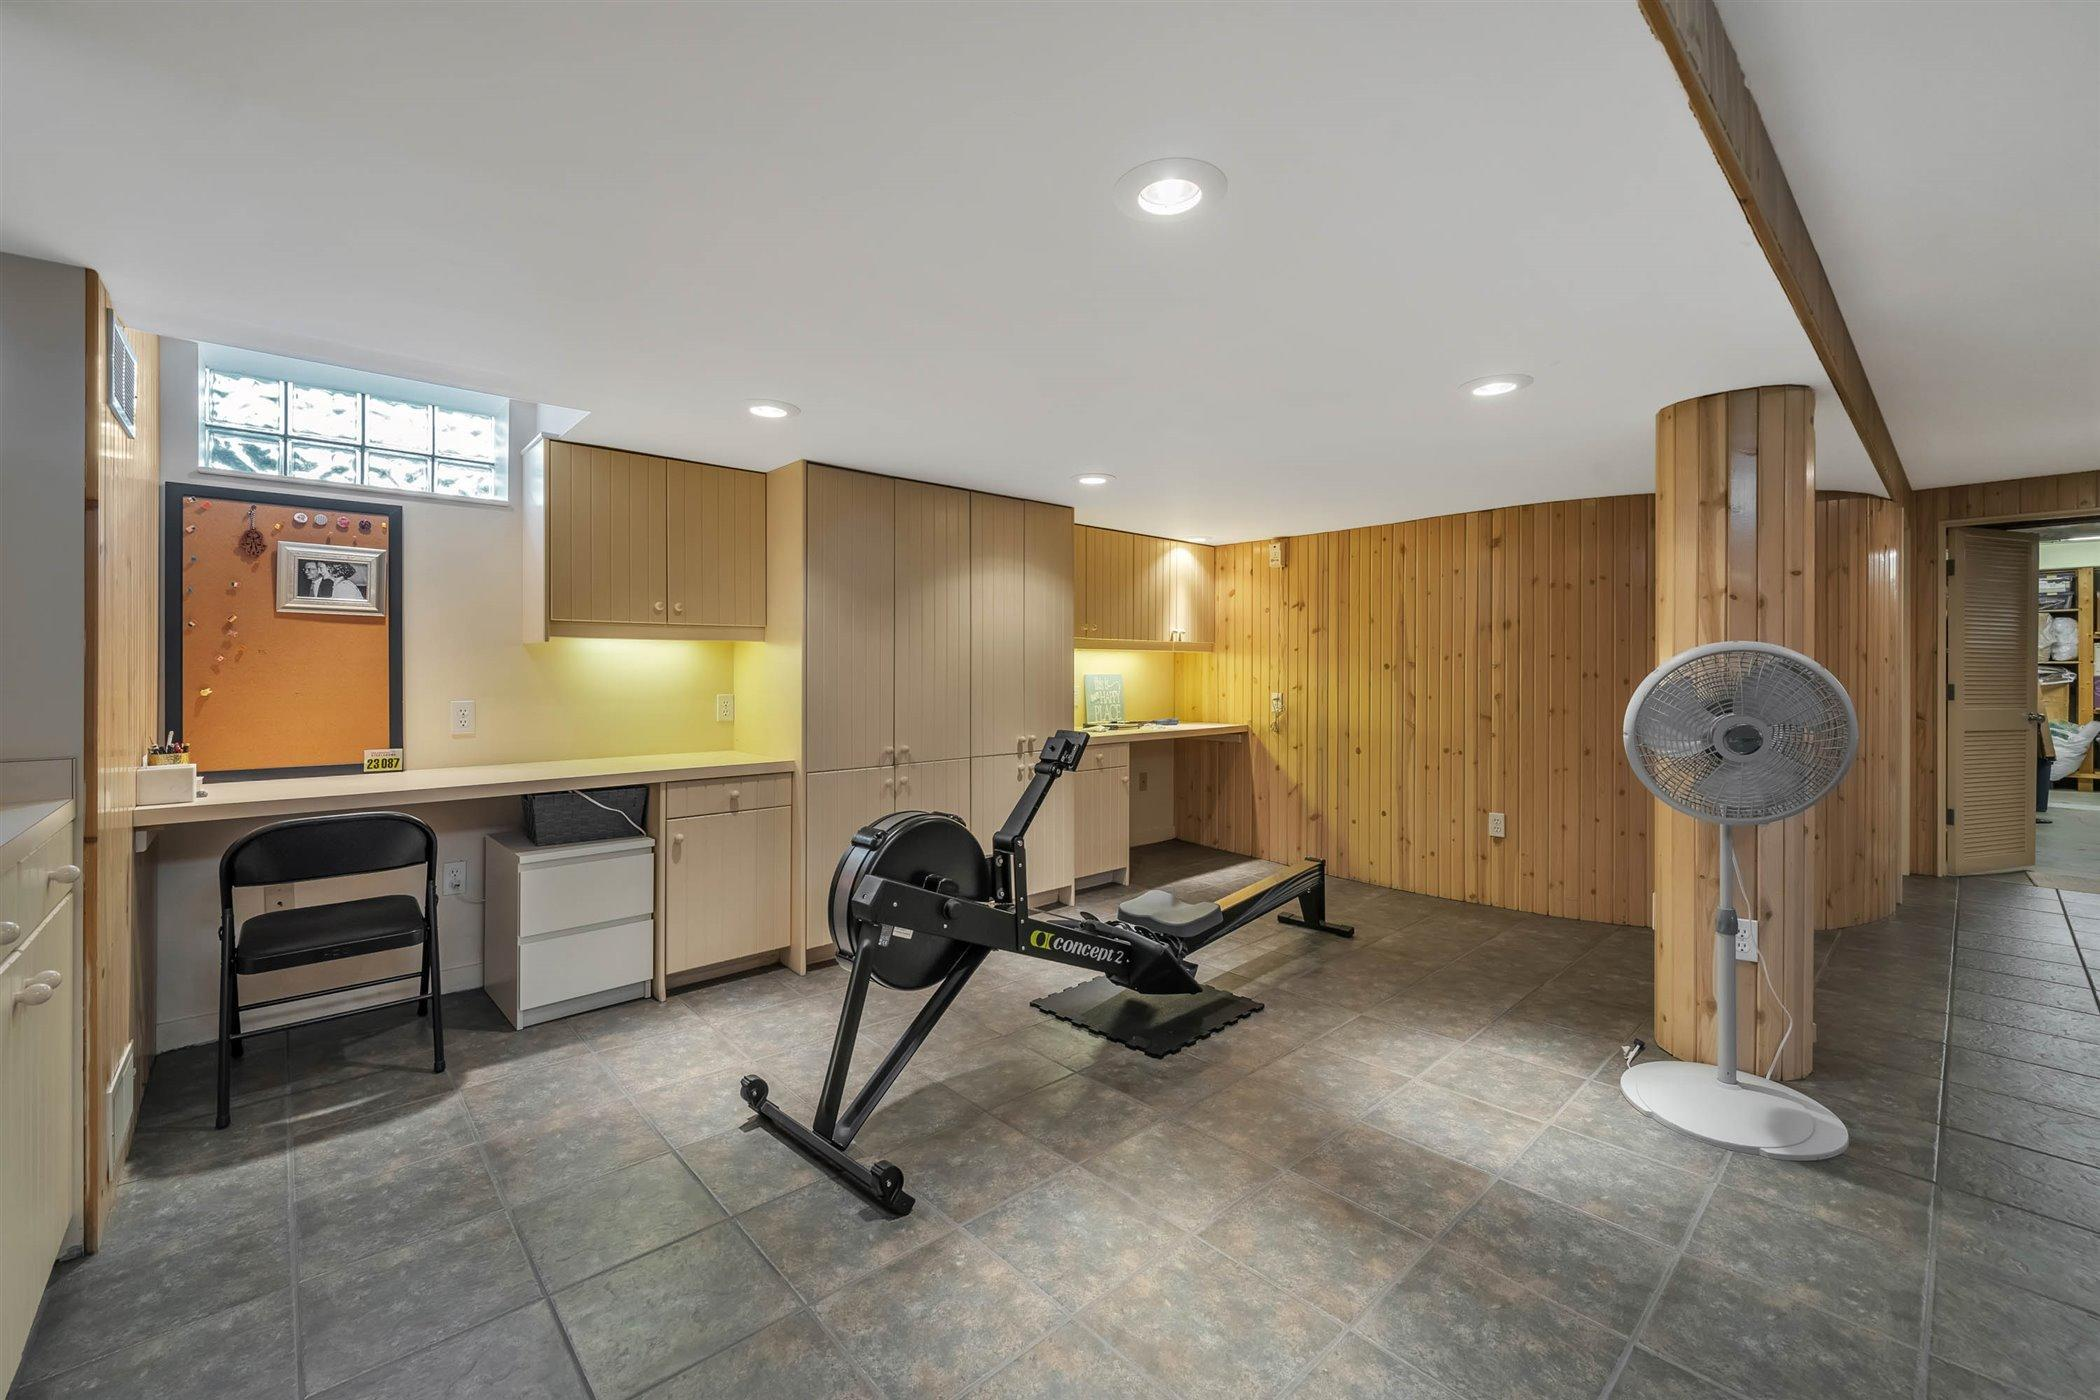 820 Southlawn Ave - LOWER LEVEL Recreation Area - 40